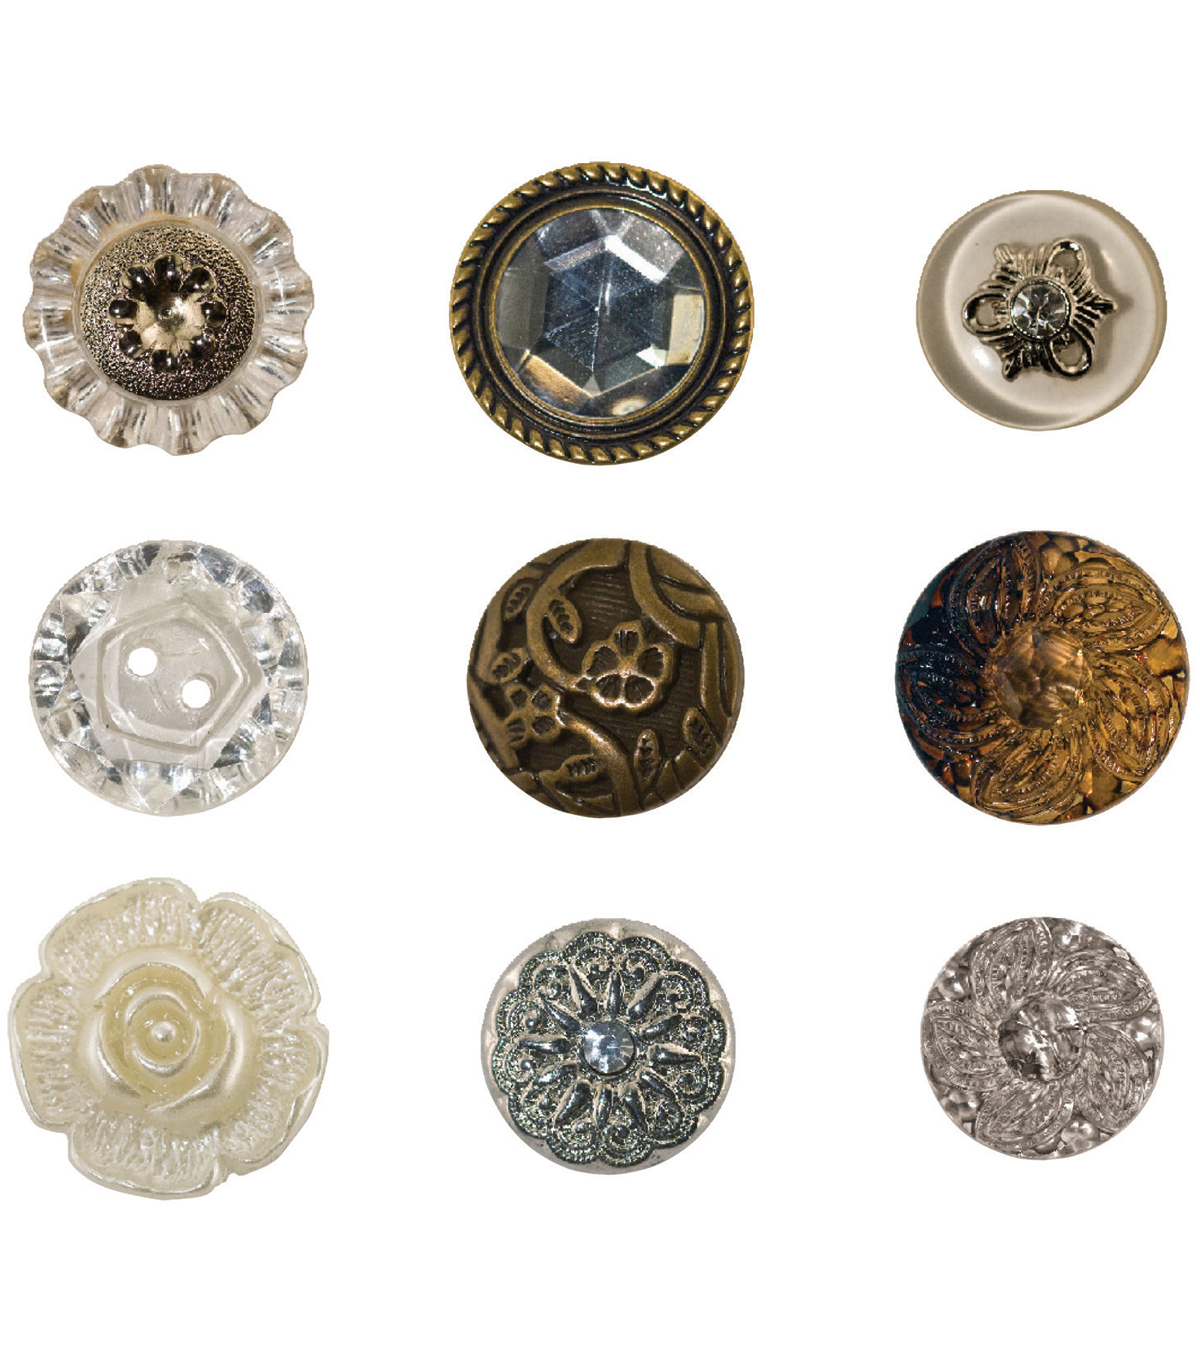 Tim Holtz Idea-Ology Advantus Corp Accoutrements Fanciful Buttons